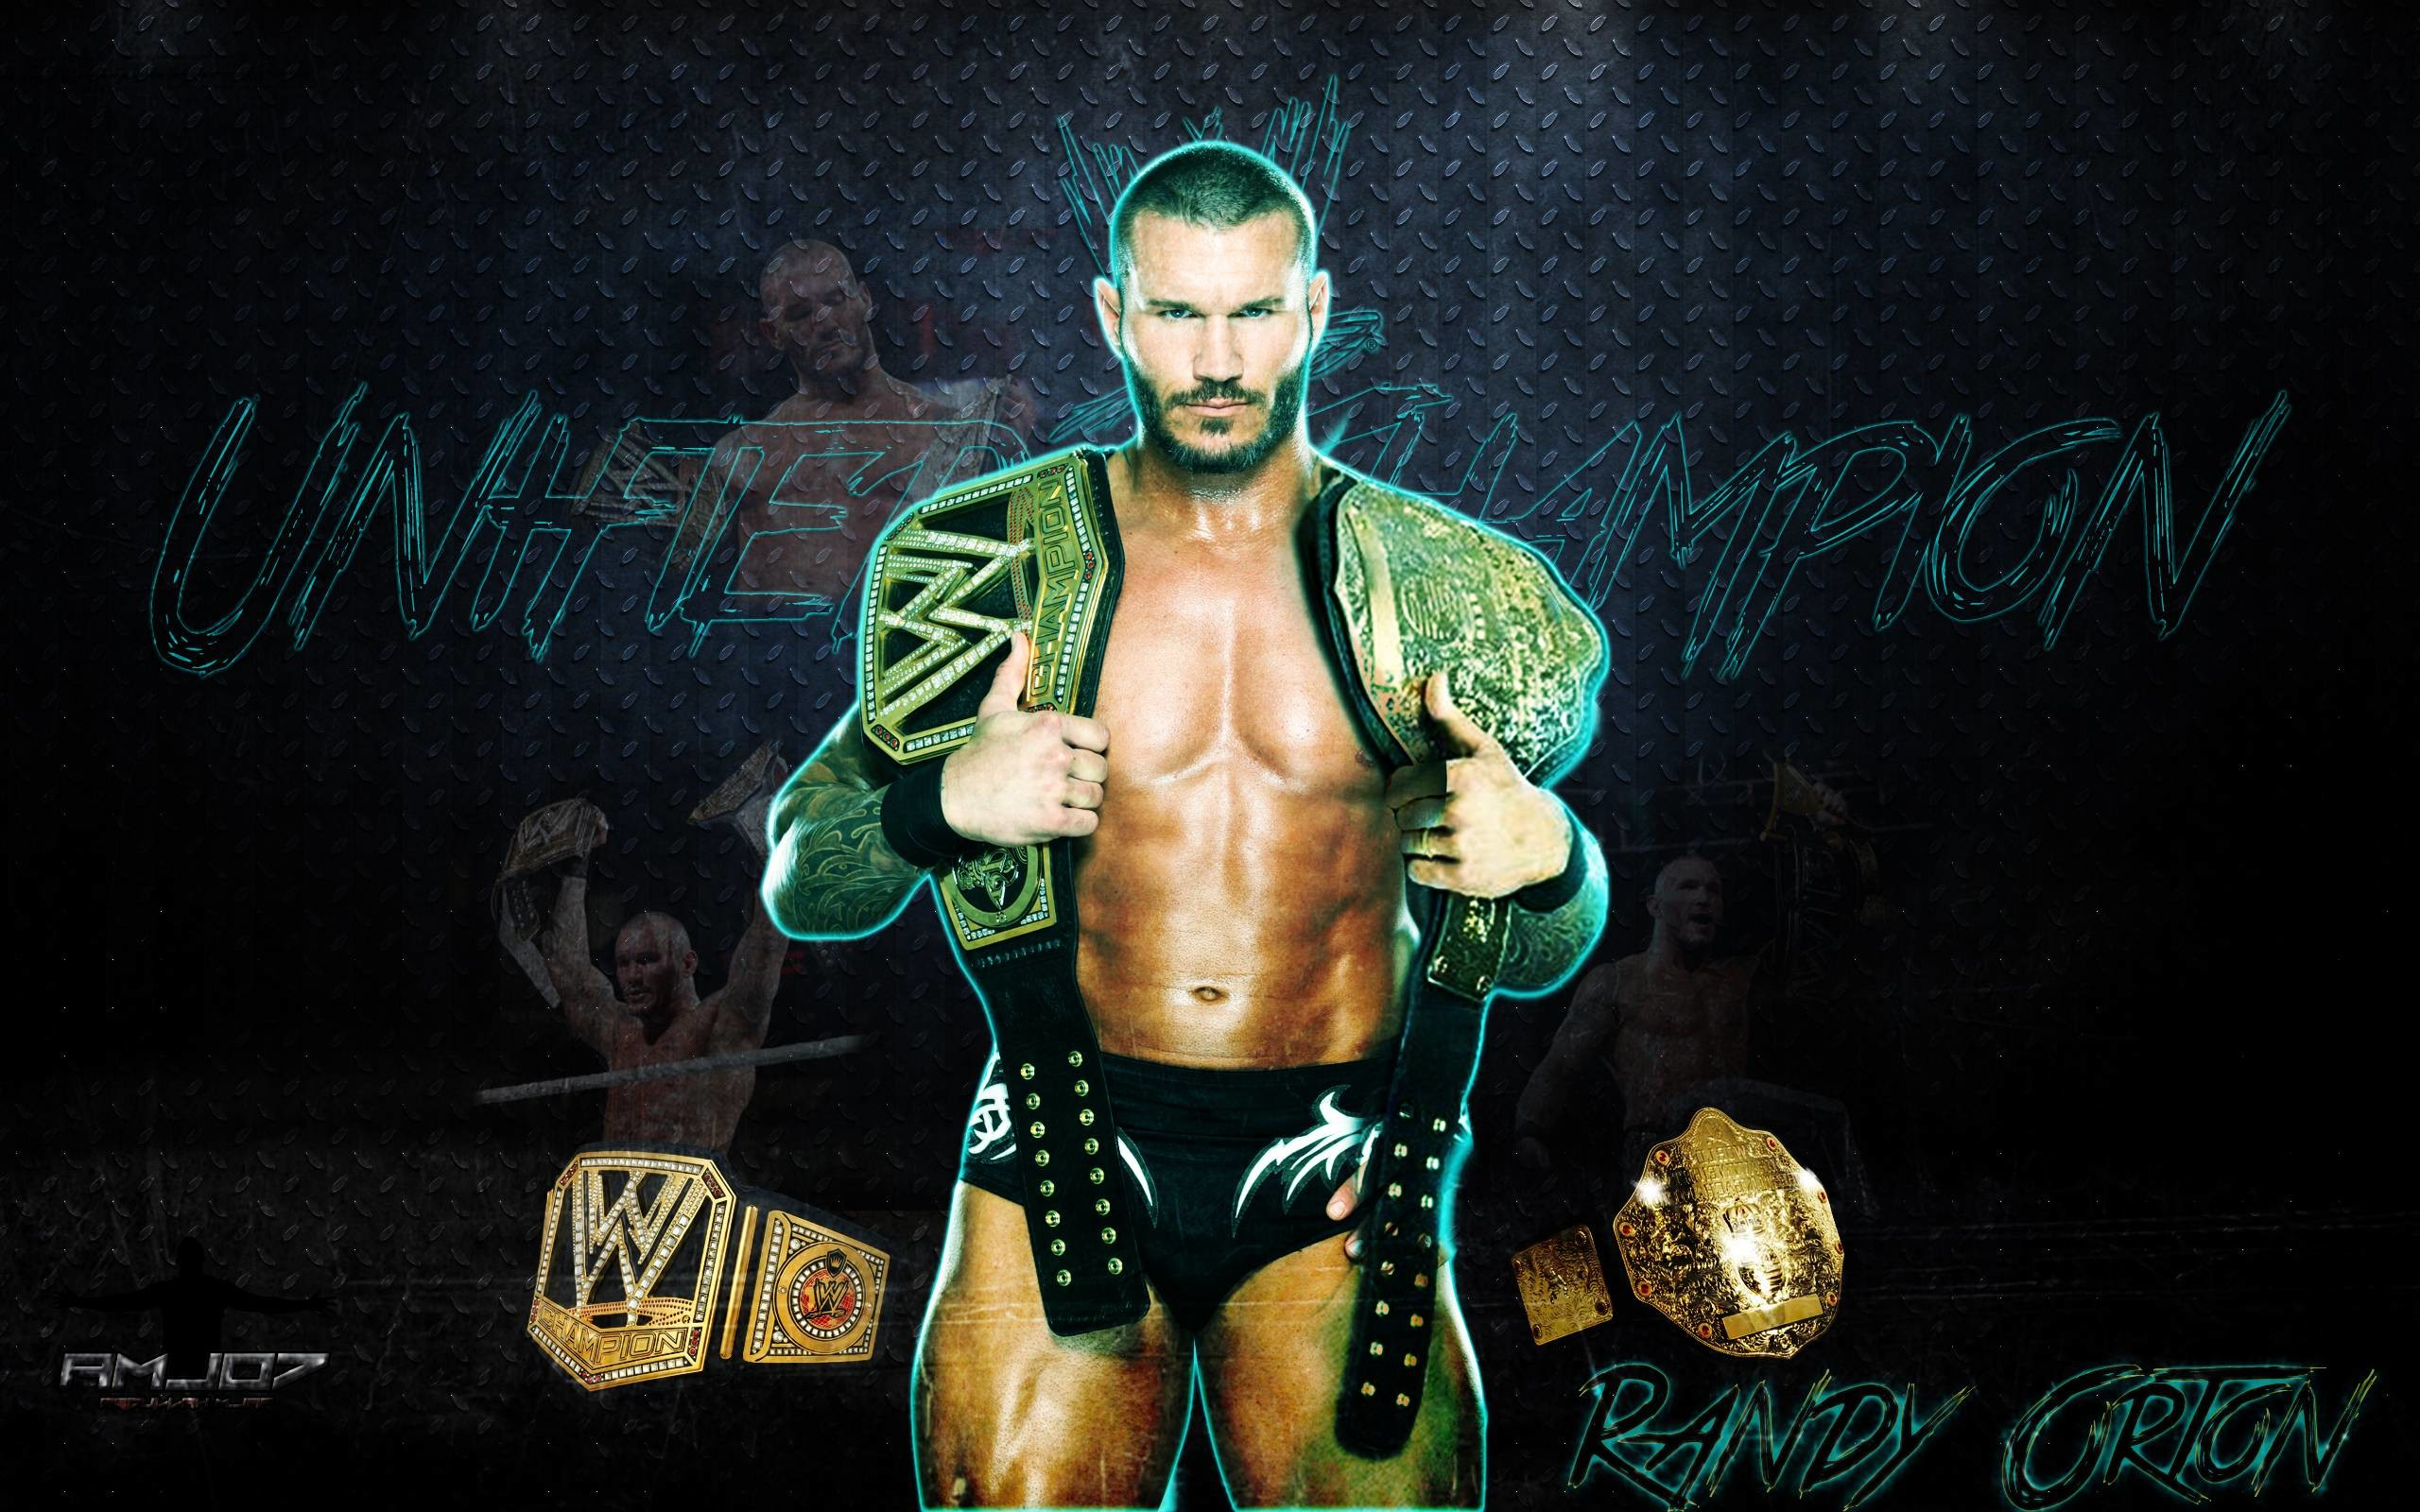 2560x1600 Randy Orton Hd Wallpapers | Hd Wallpapers